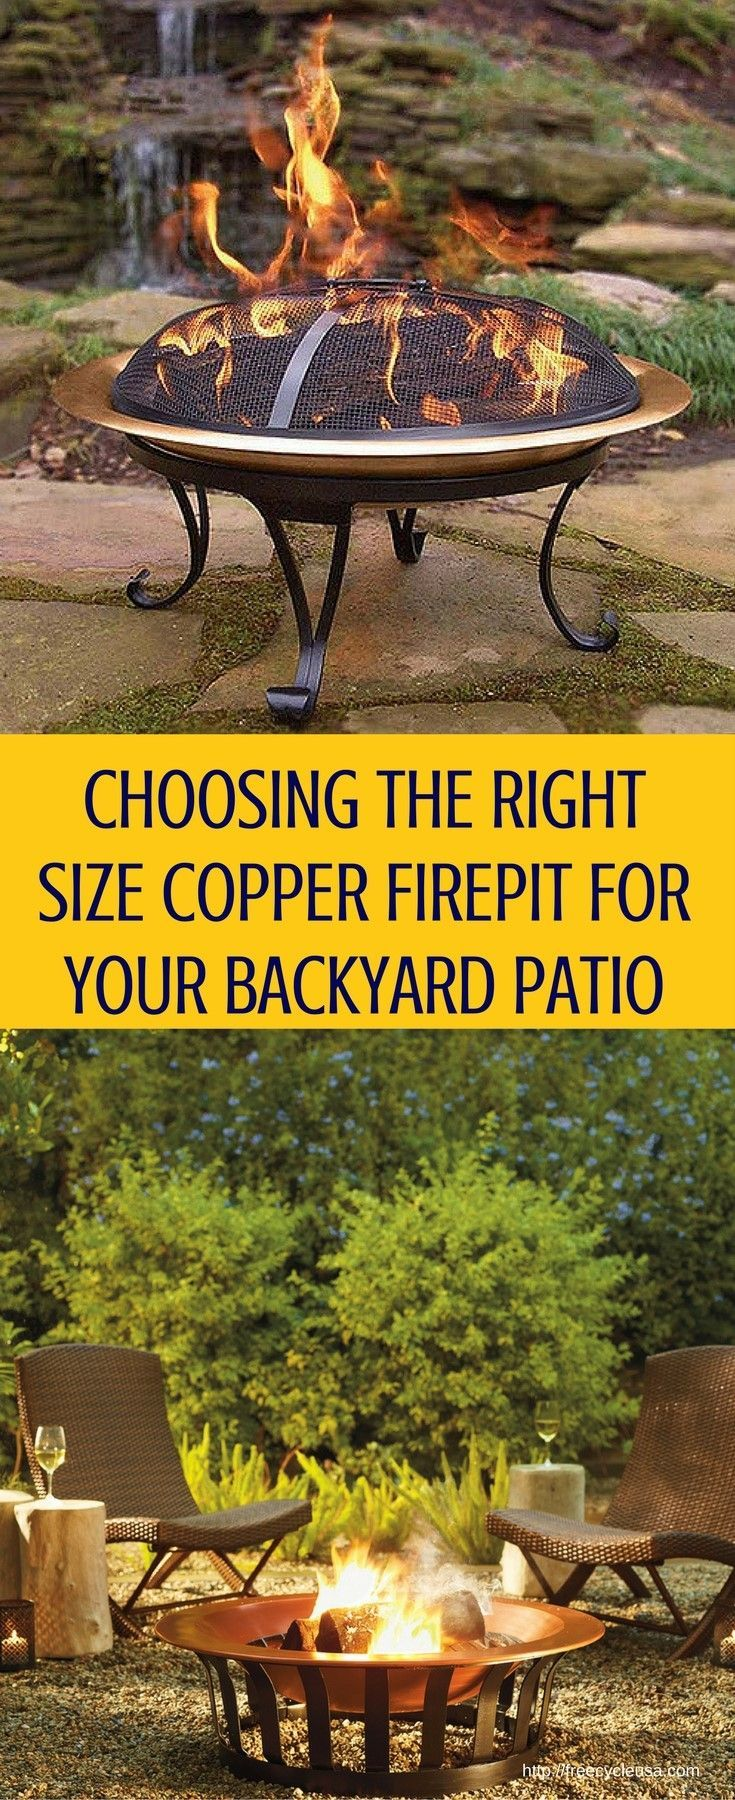 Choosing the Right Size Copper Fire Pit For Your Backyard Patio - http://www.freecycleusa.com/choosing-right-size-copper-fire-pit-backyard-patio/